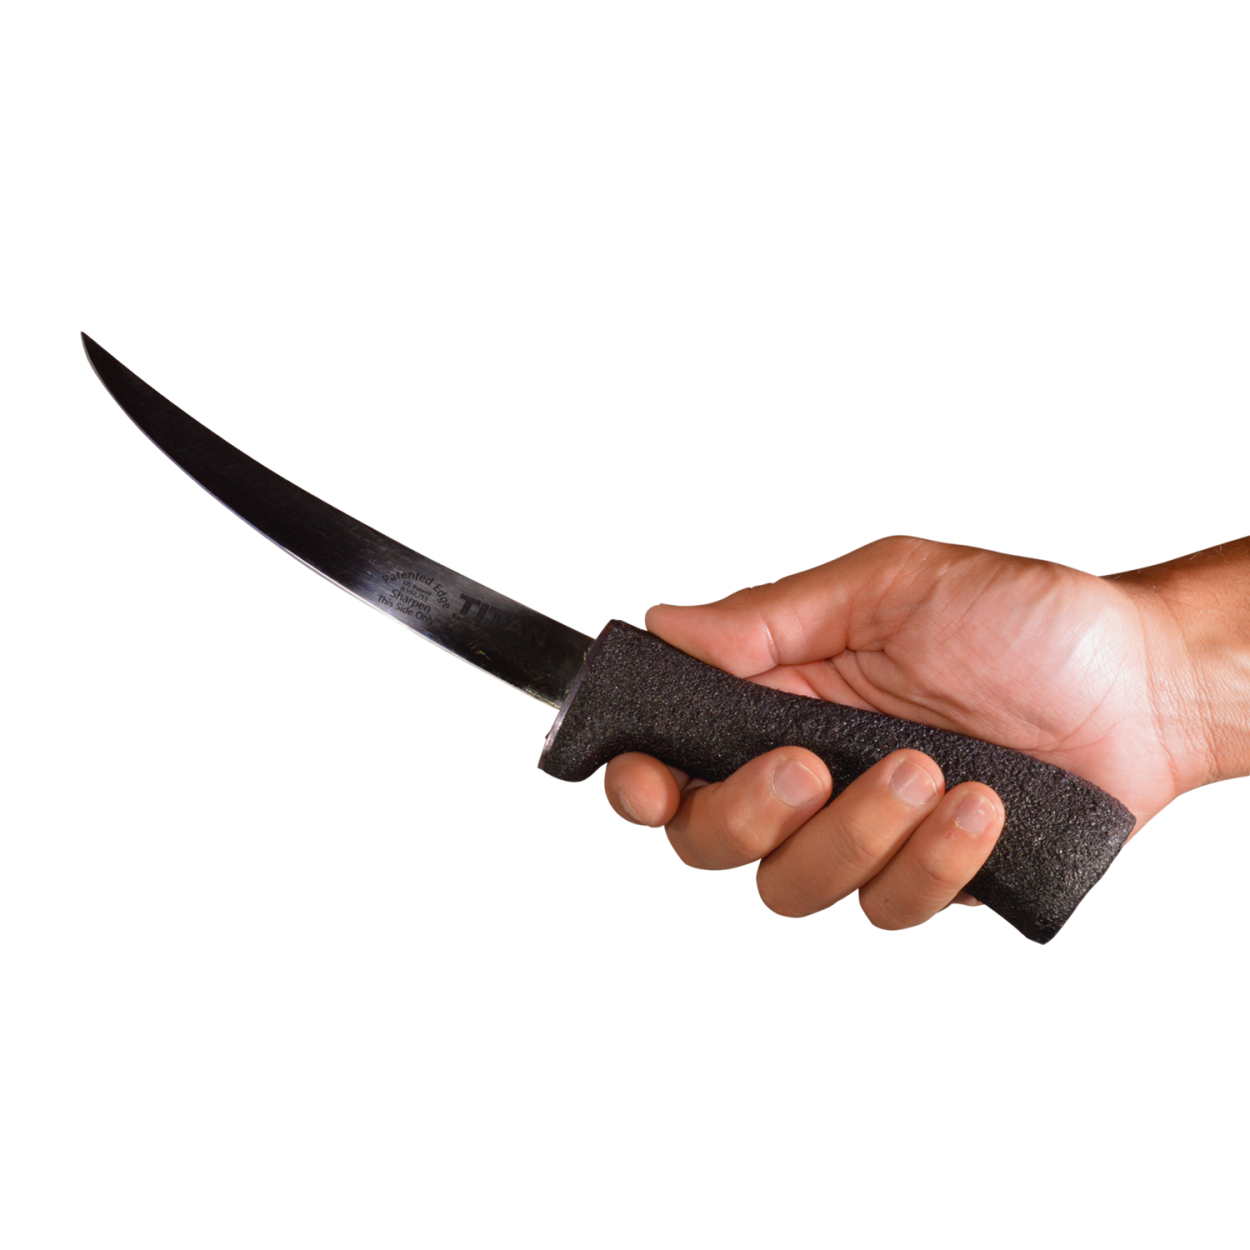 Hand With Knife Png 3 Png Image 659373 Png Images Pngio Hand knife png collections download alot of images for hand knife download free with high quality for designers. hand with knife png 3 png image